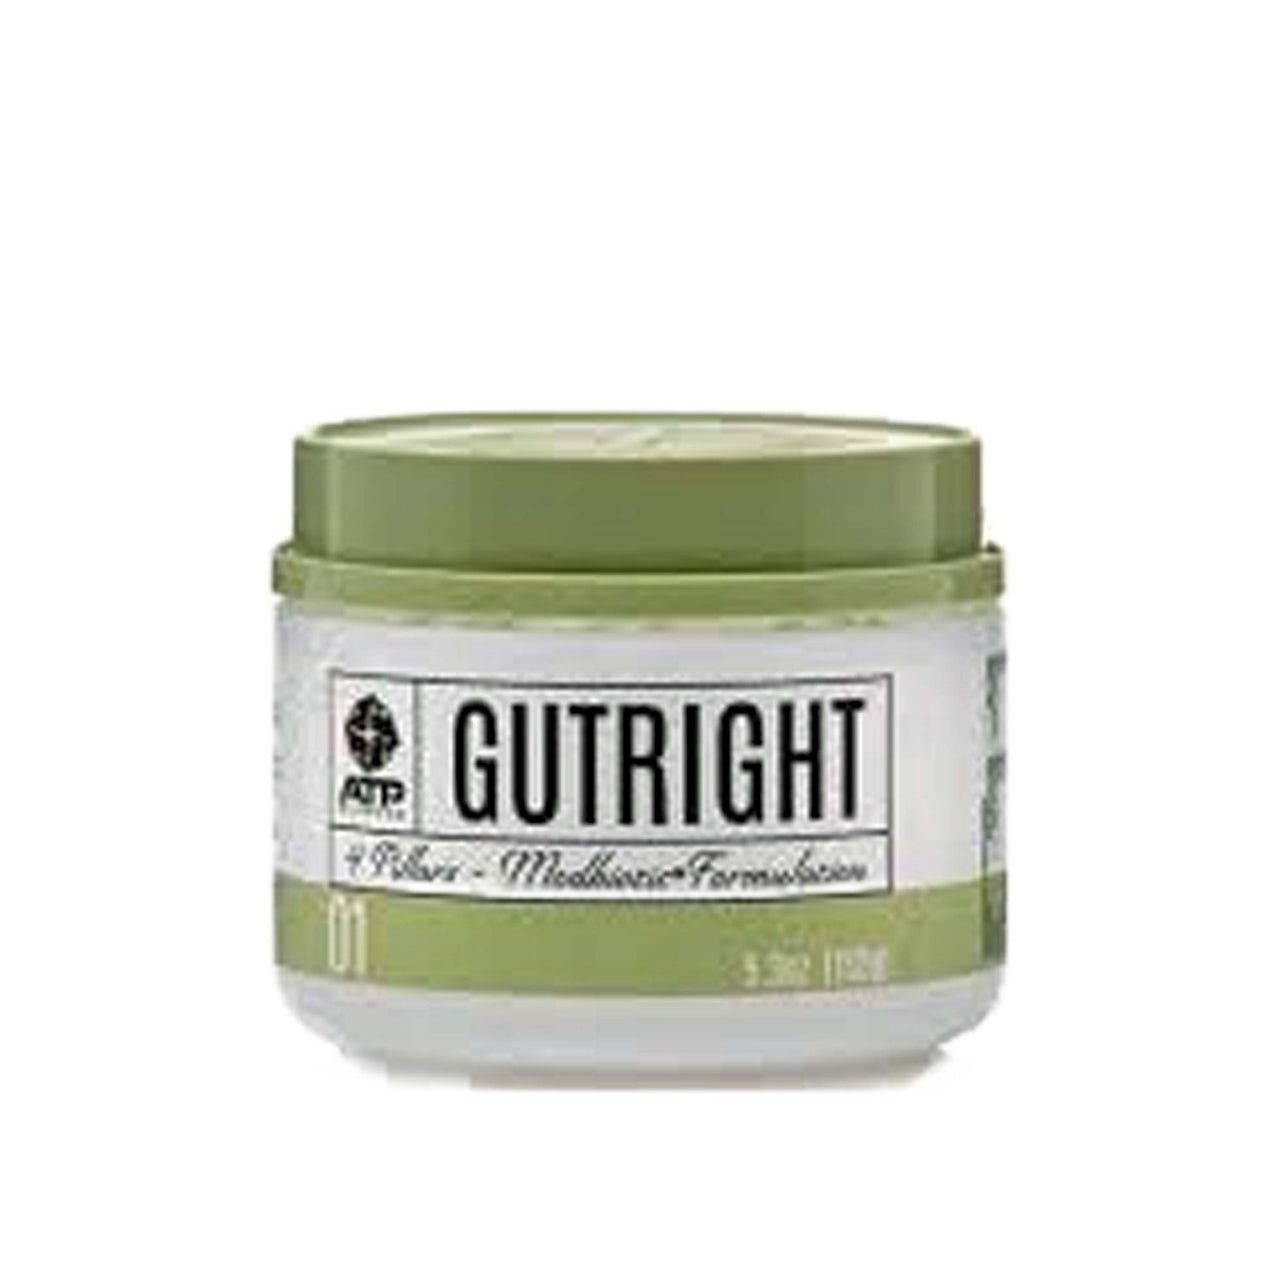 Atp Science Gutright 150g, ATP Science - Nutrition Co Australia